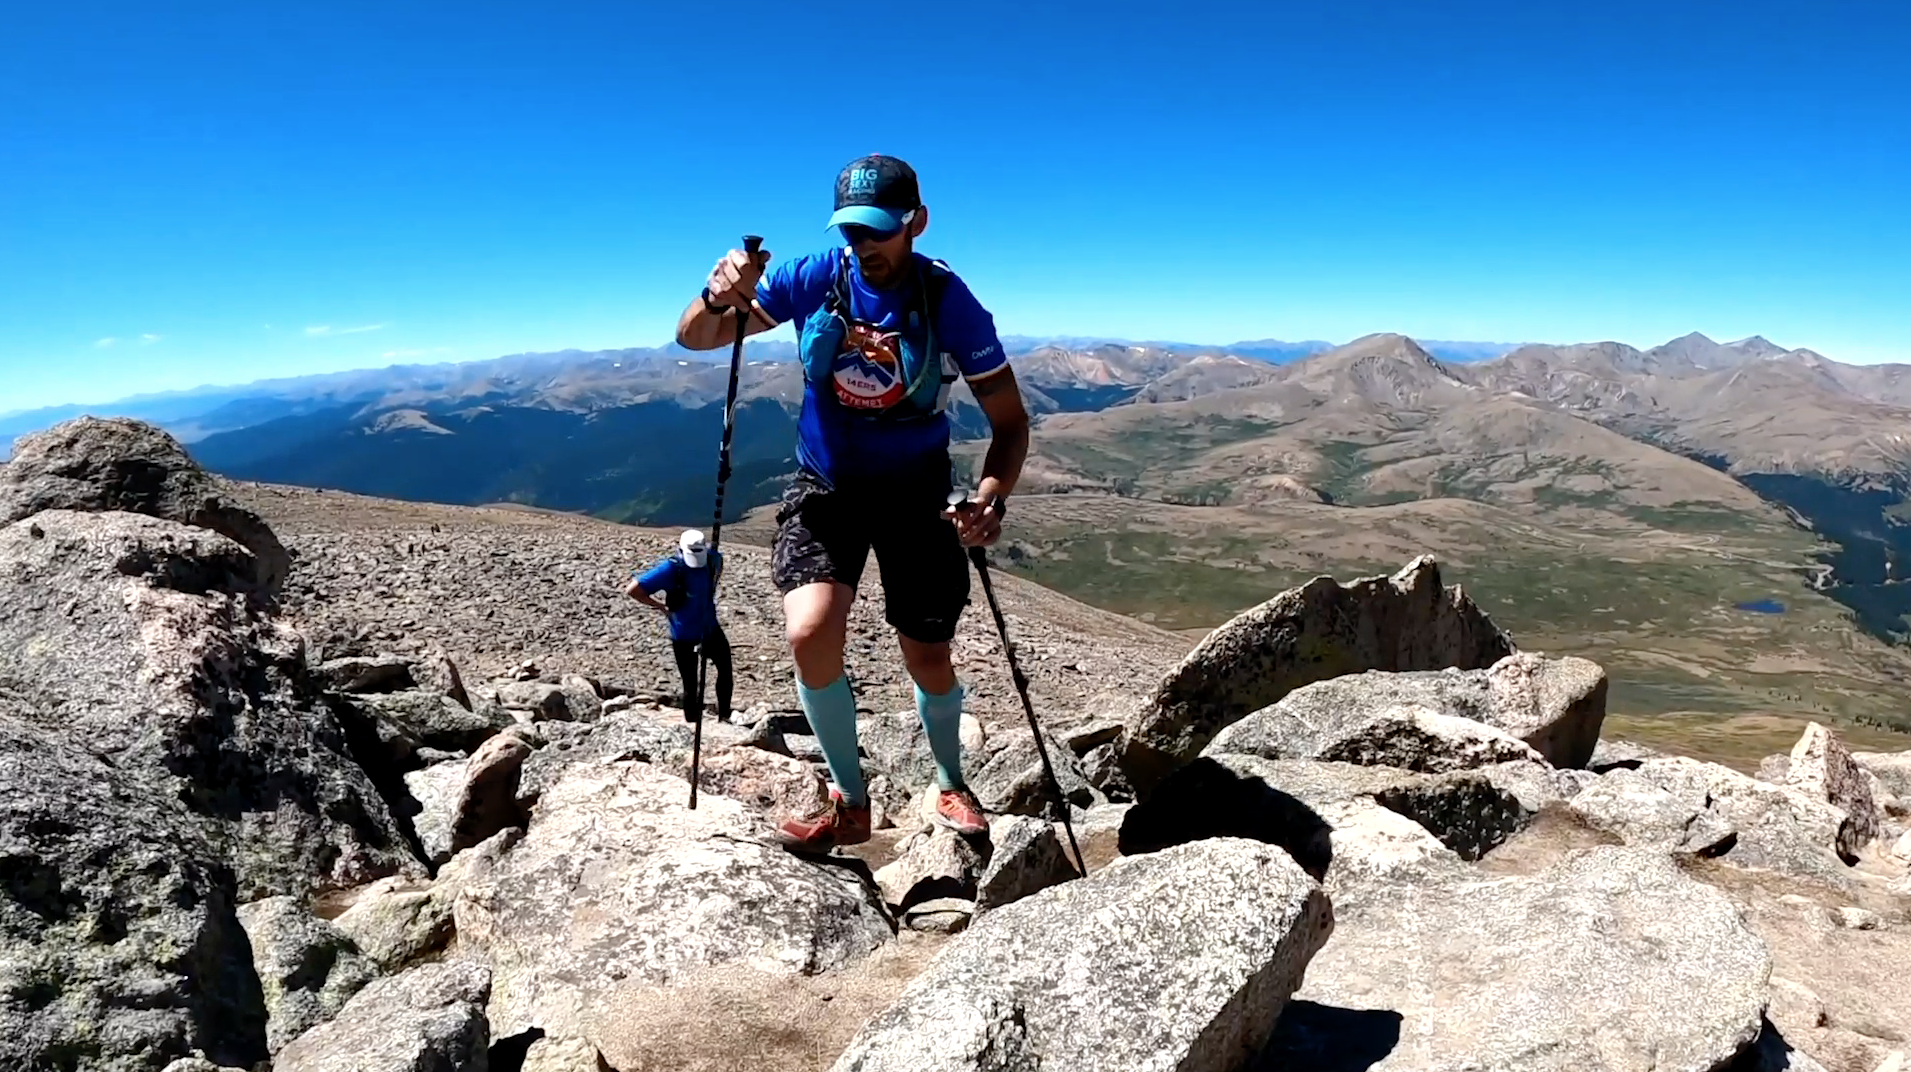 Chris breaking Colorado 14er world record